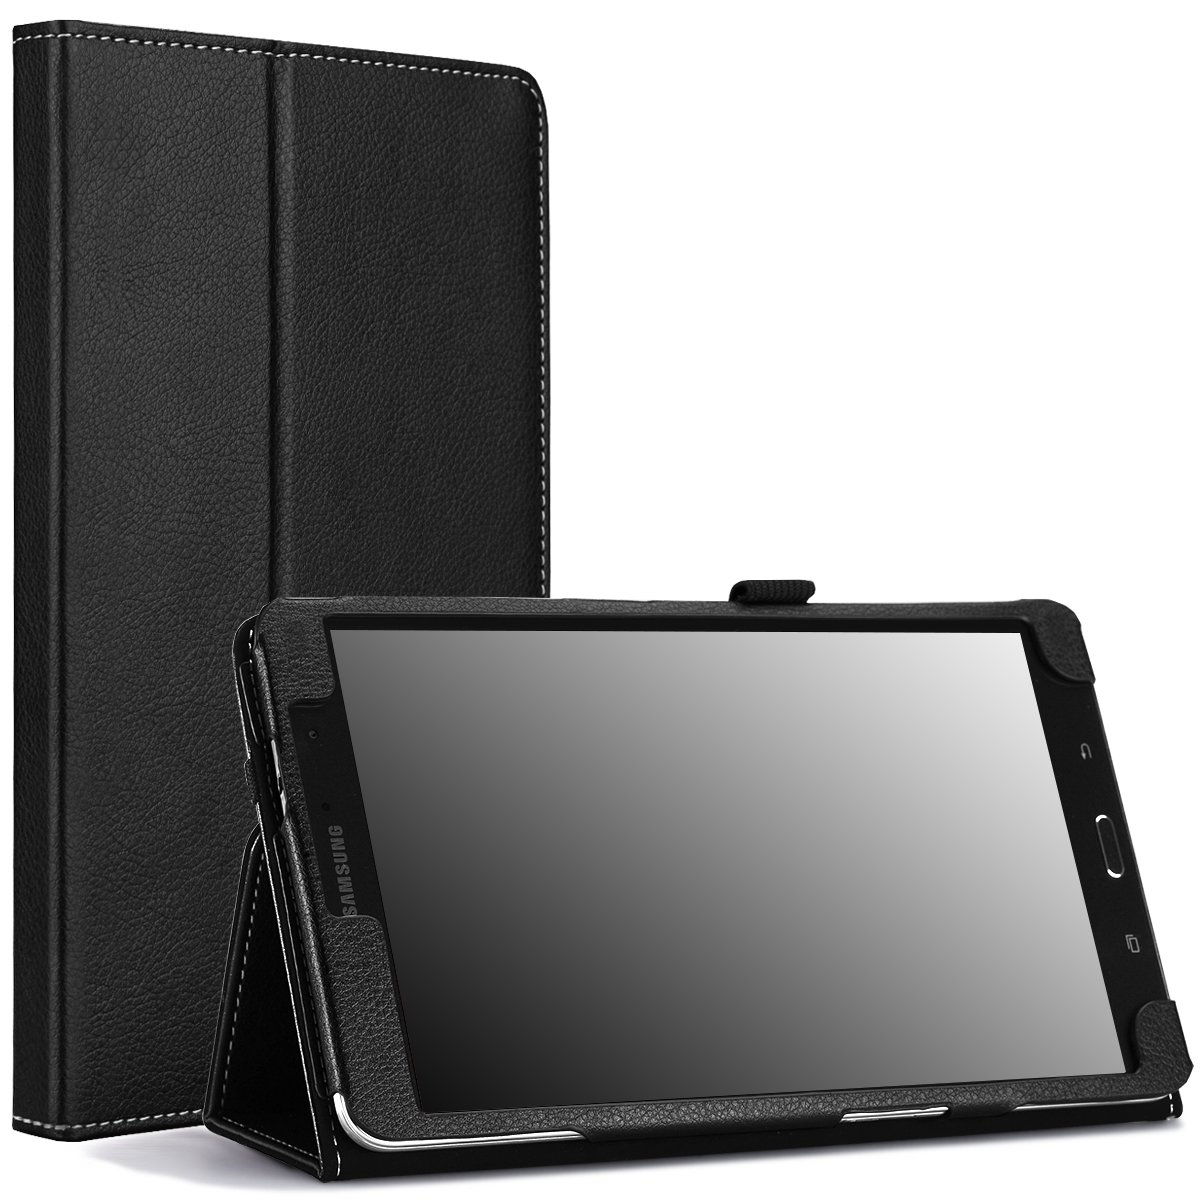 MoKo Samsung Galaxy Tab PRO 8.4 Case - Slim Folding Cover Case for Galaxy TabPRO 8.4 Android Tablet, Black (with Smart Cover Auto Wake/Sleep. Will NOT Fit Samsung Galaxy Tab 4 8.0)